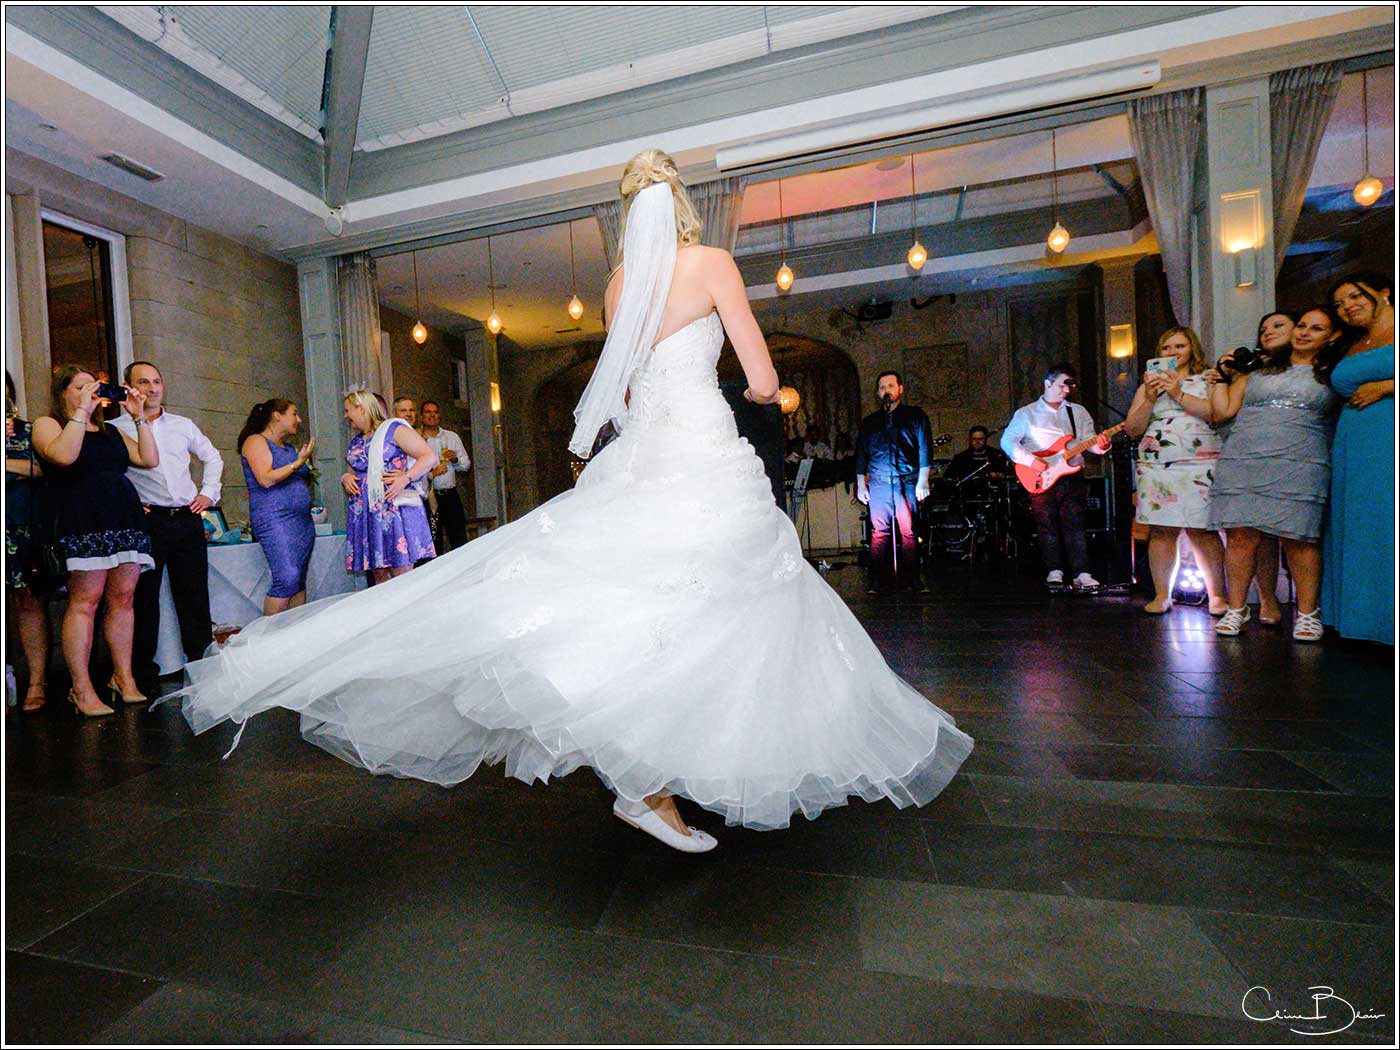 Bridal twirl during the first dance-by Hampton manor wedding photographer Clive Blair Photography